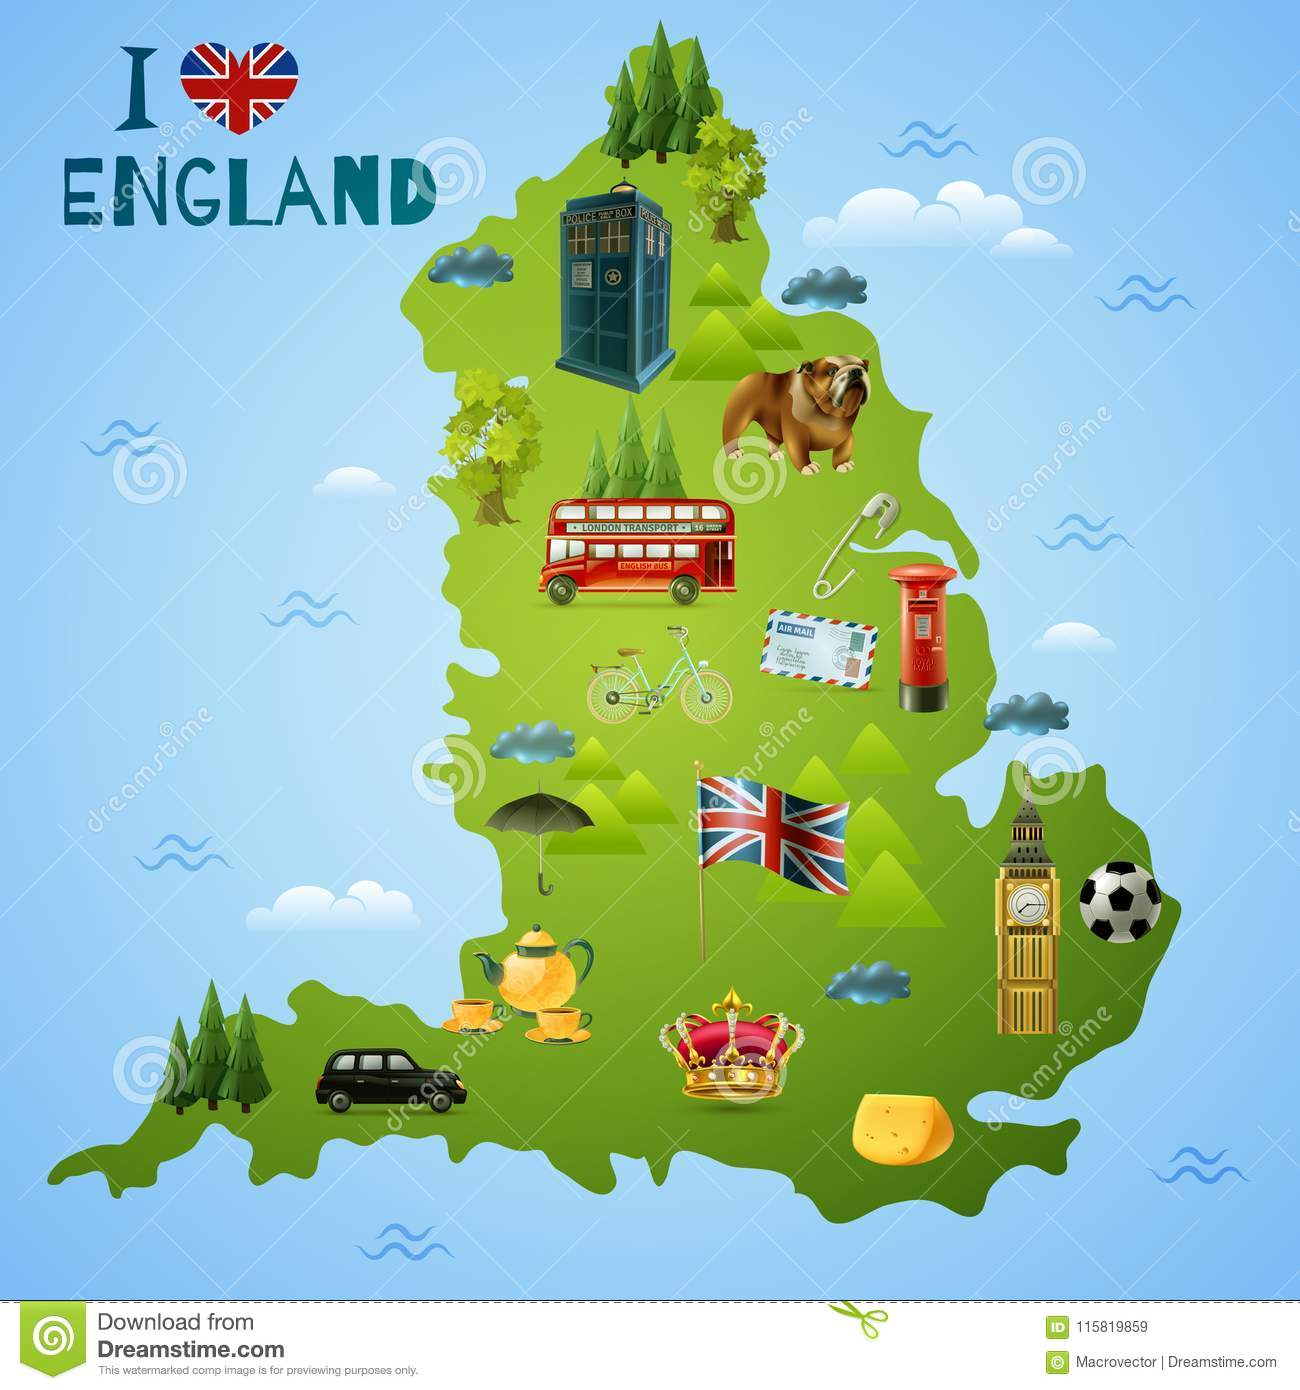 Www Map Of England.Travel Map For England Illustration Stock Vector Illustration Of